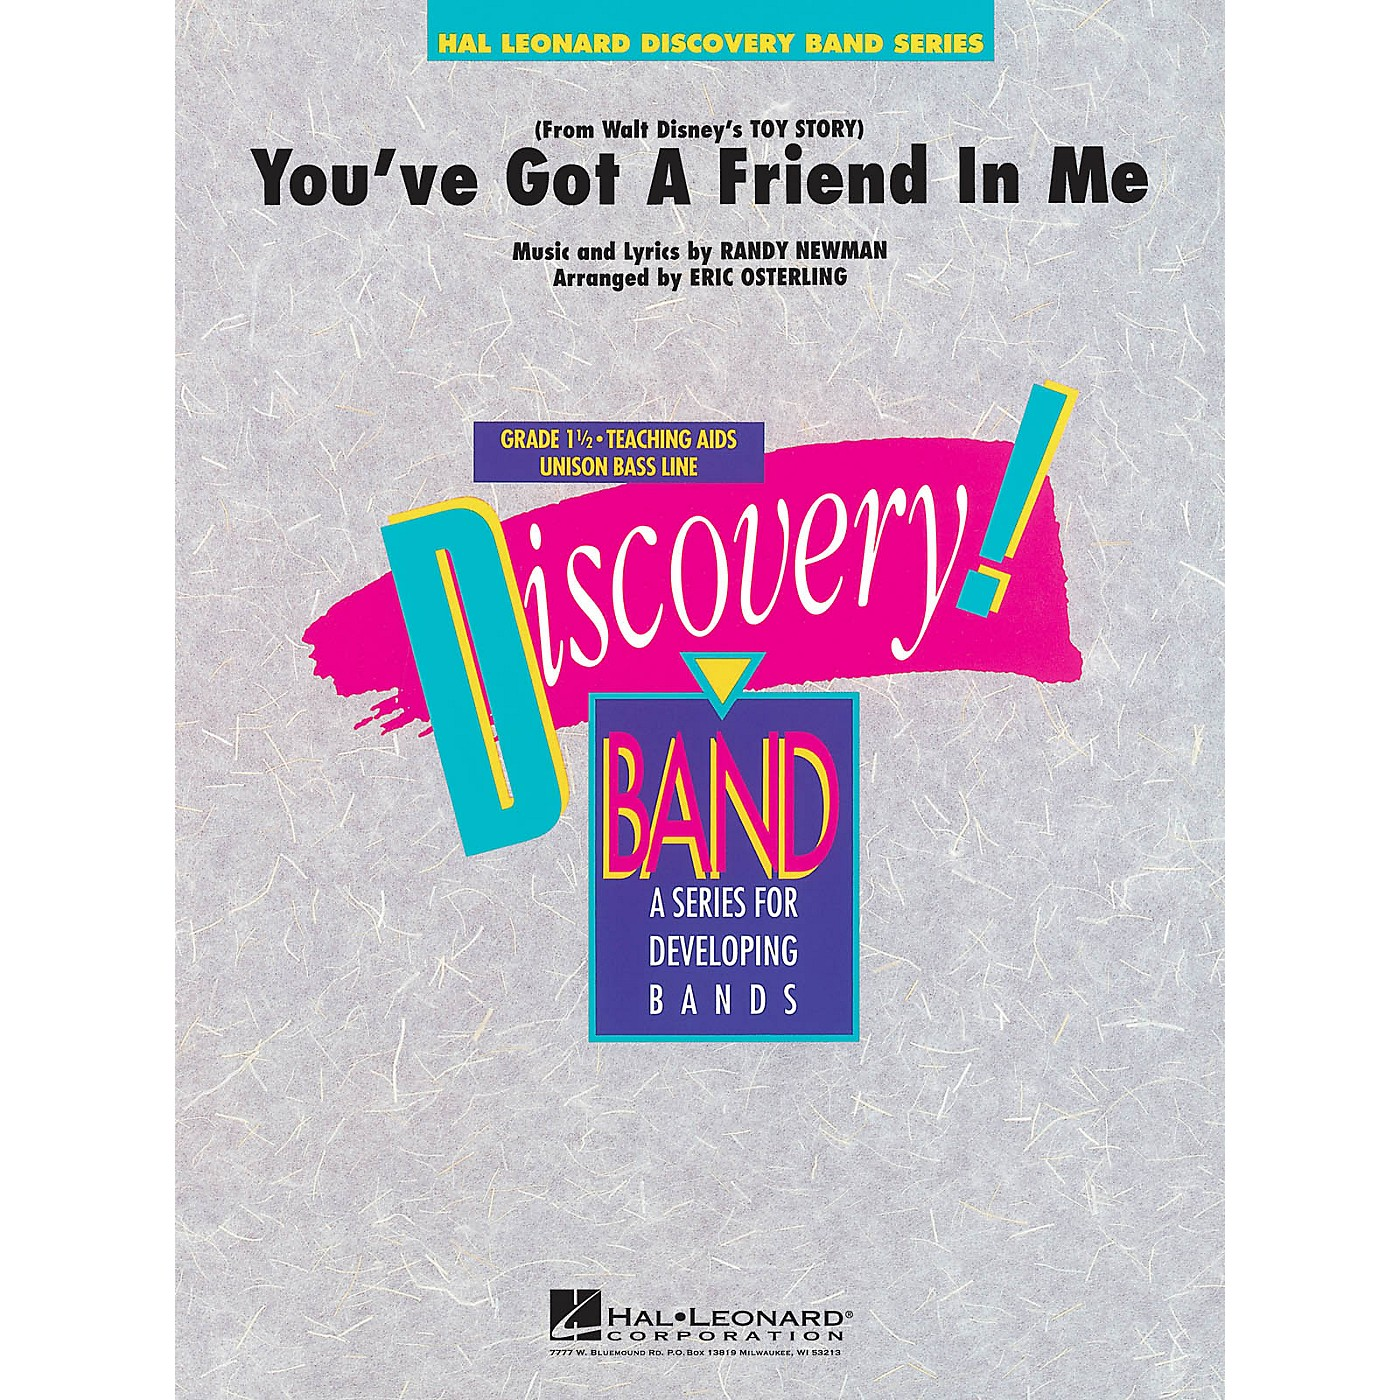 Hal Leonard You've Got a Friend in Me Concert Band Level 1.5 Arranged by Eric Osterling thumbnail